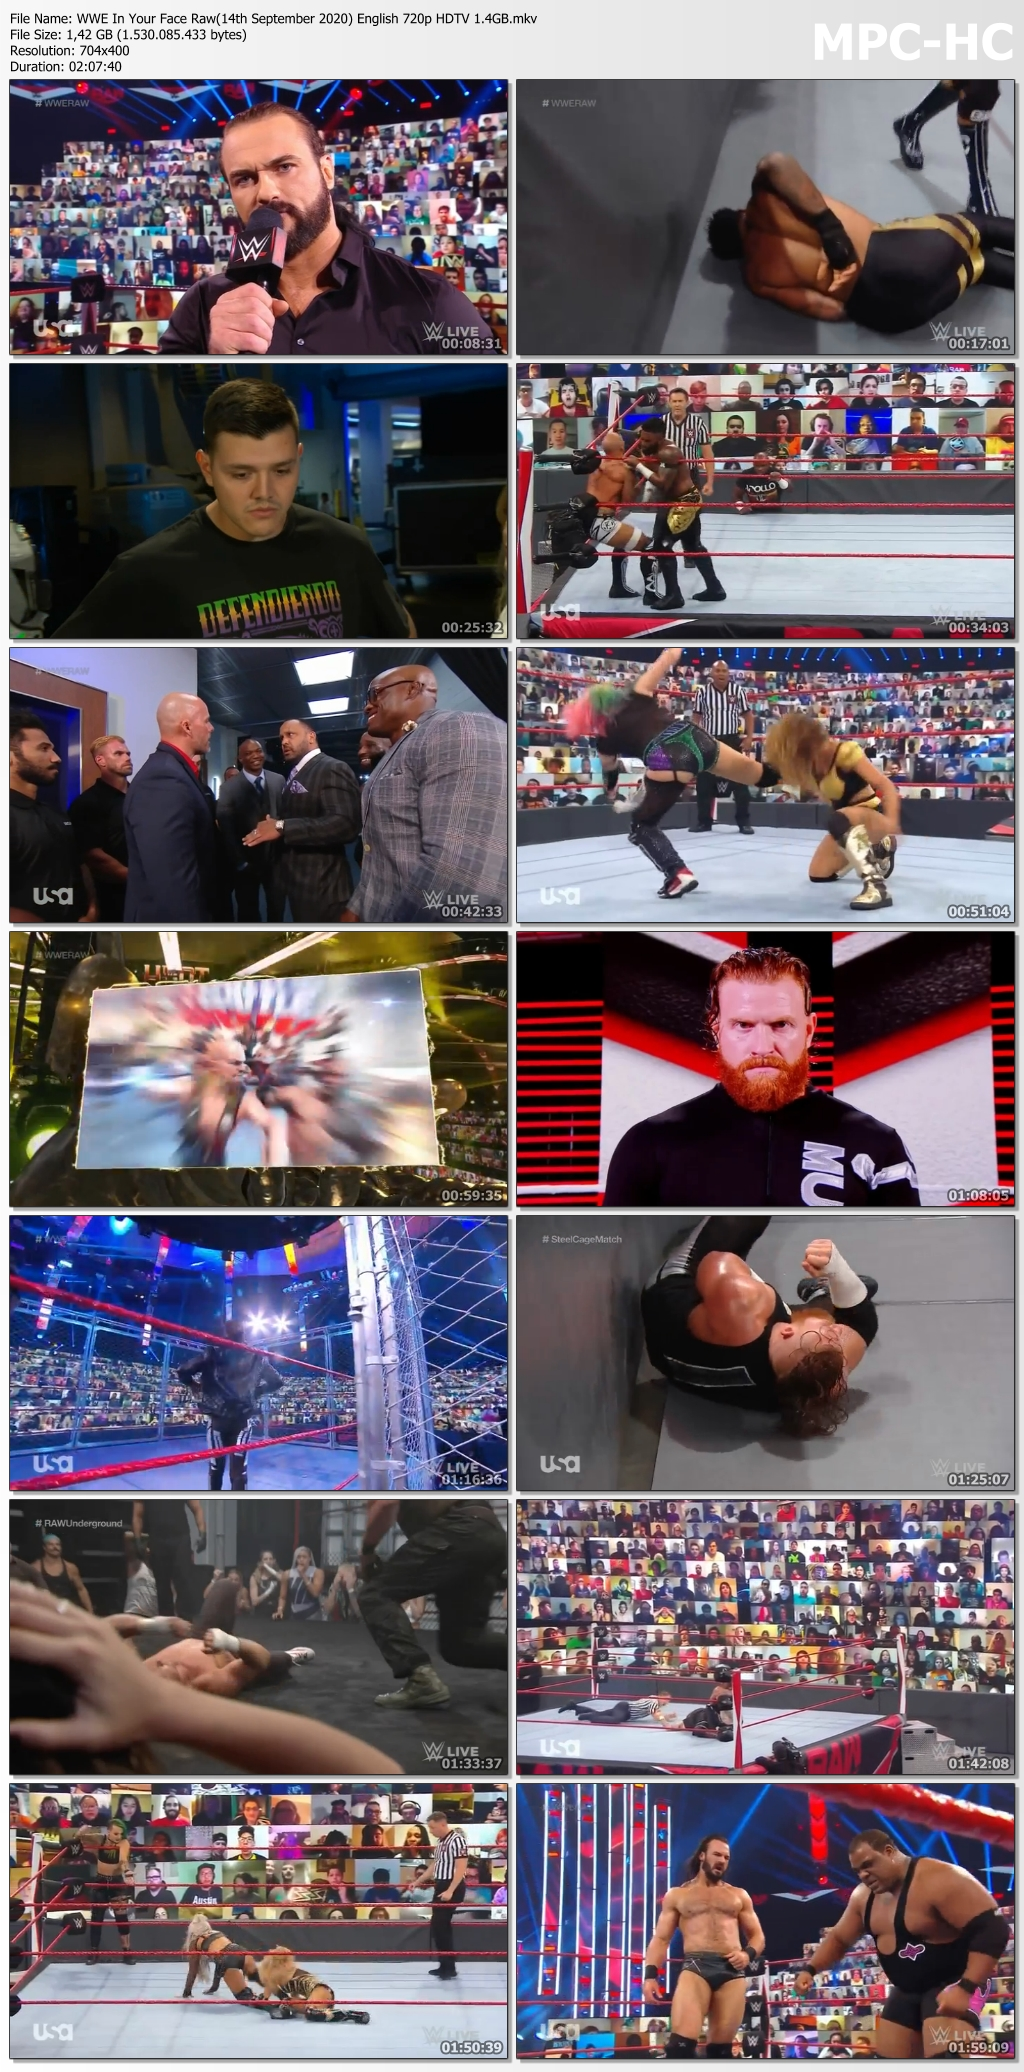 WWE-In-Your-Face-Raw-14th-September-2020-English-720p-HDTV-1-4-GB-mkv-thumbs